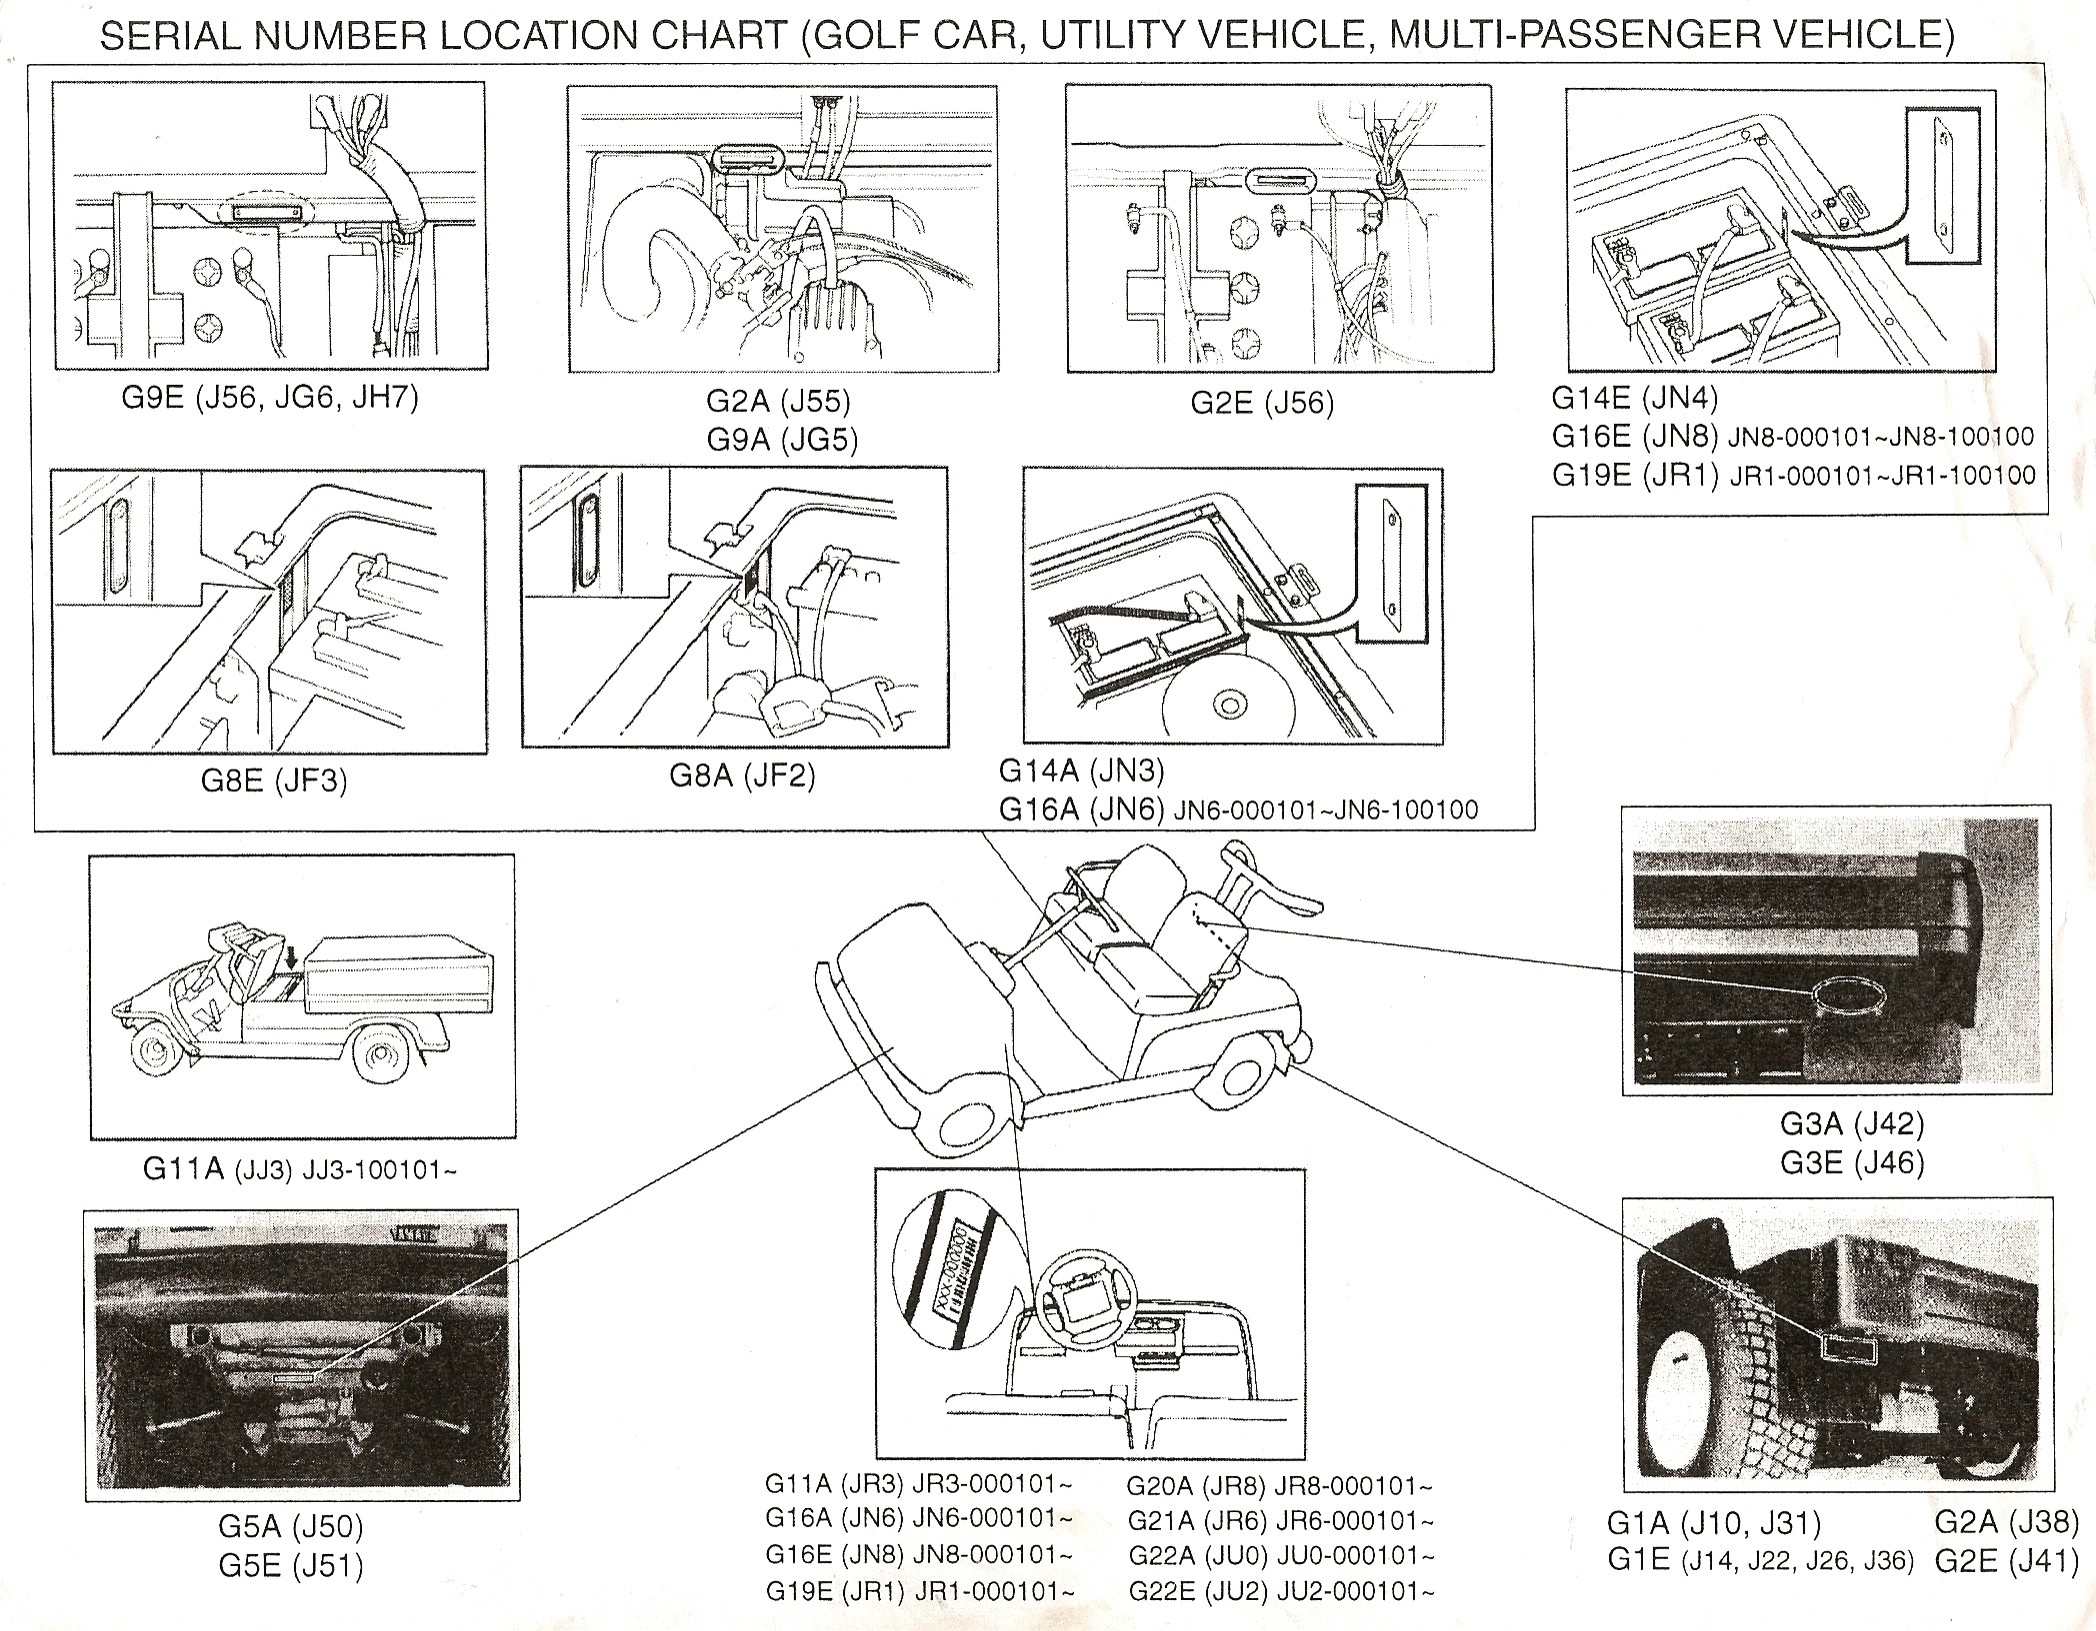 Yamaha Serial Number Locator regarding Club Car Golf Cart Parts Diagram